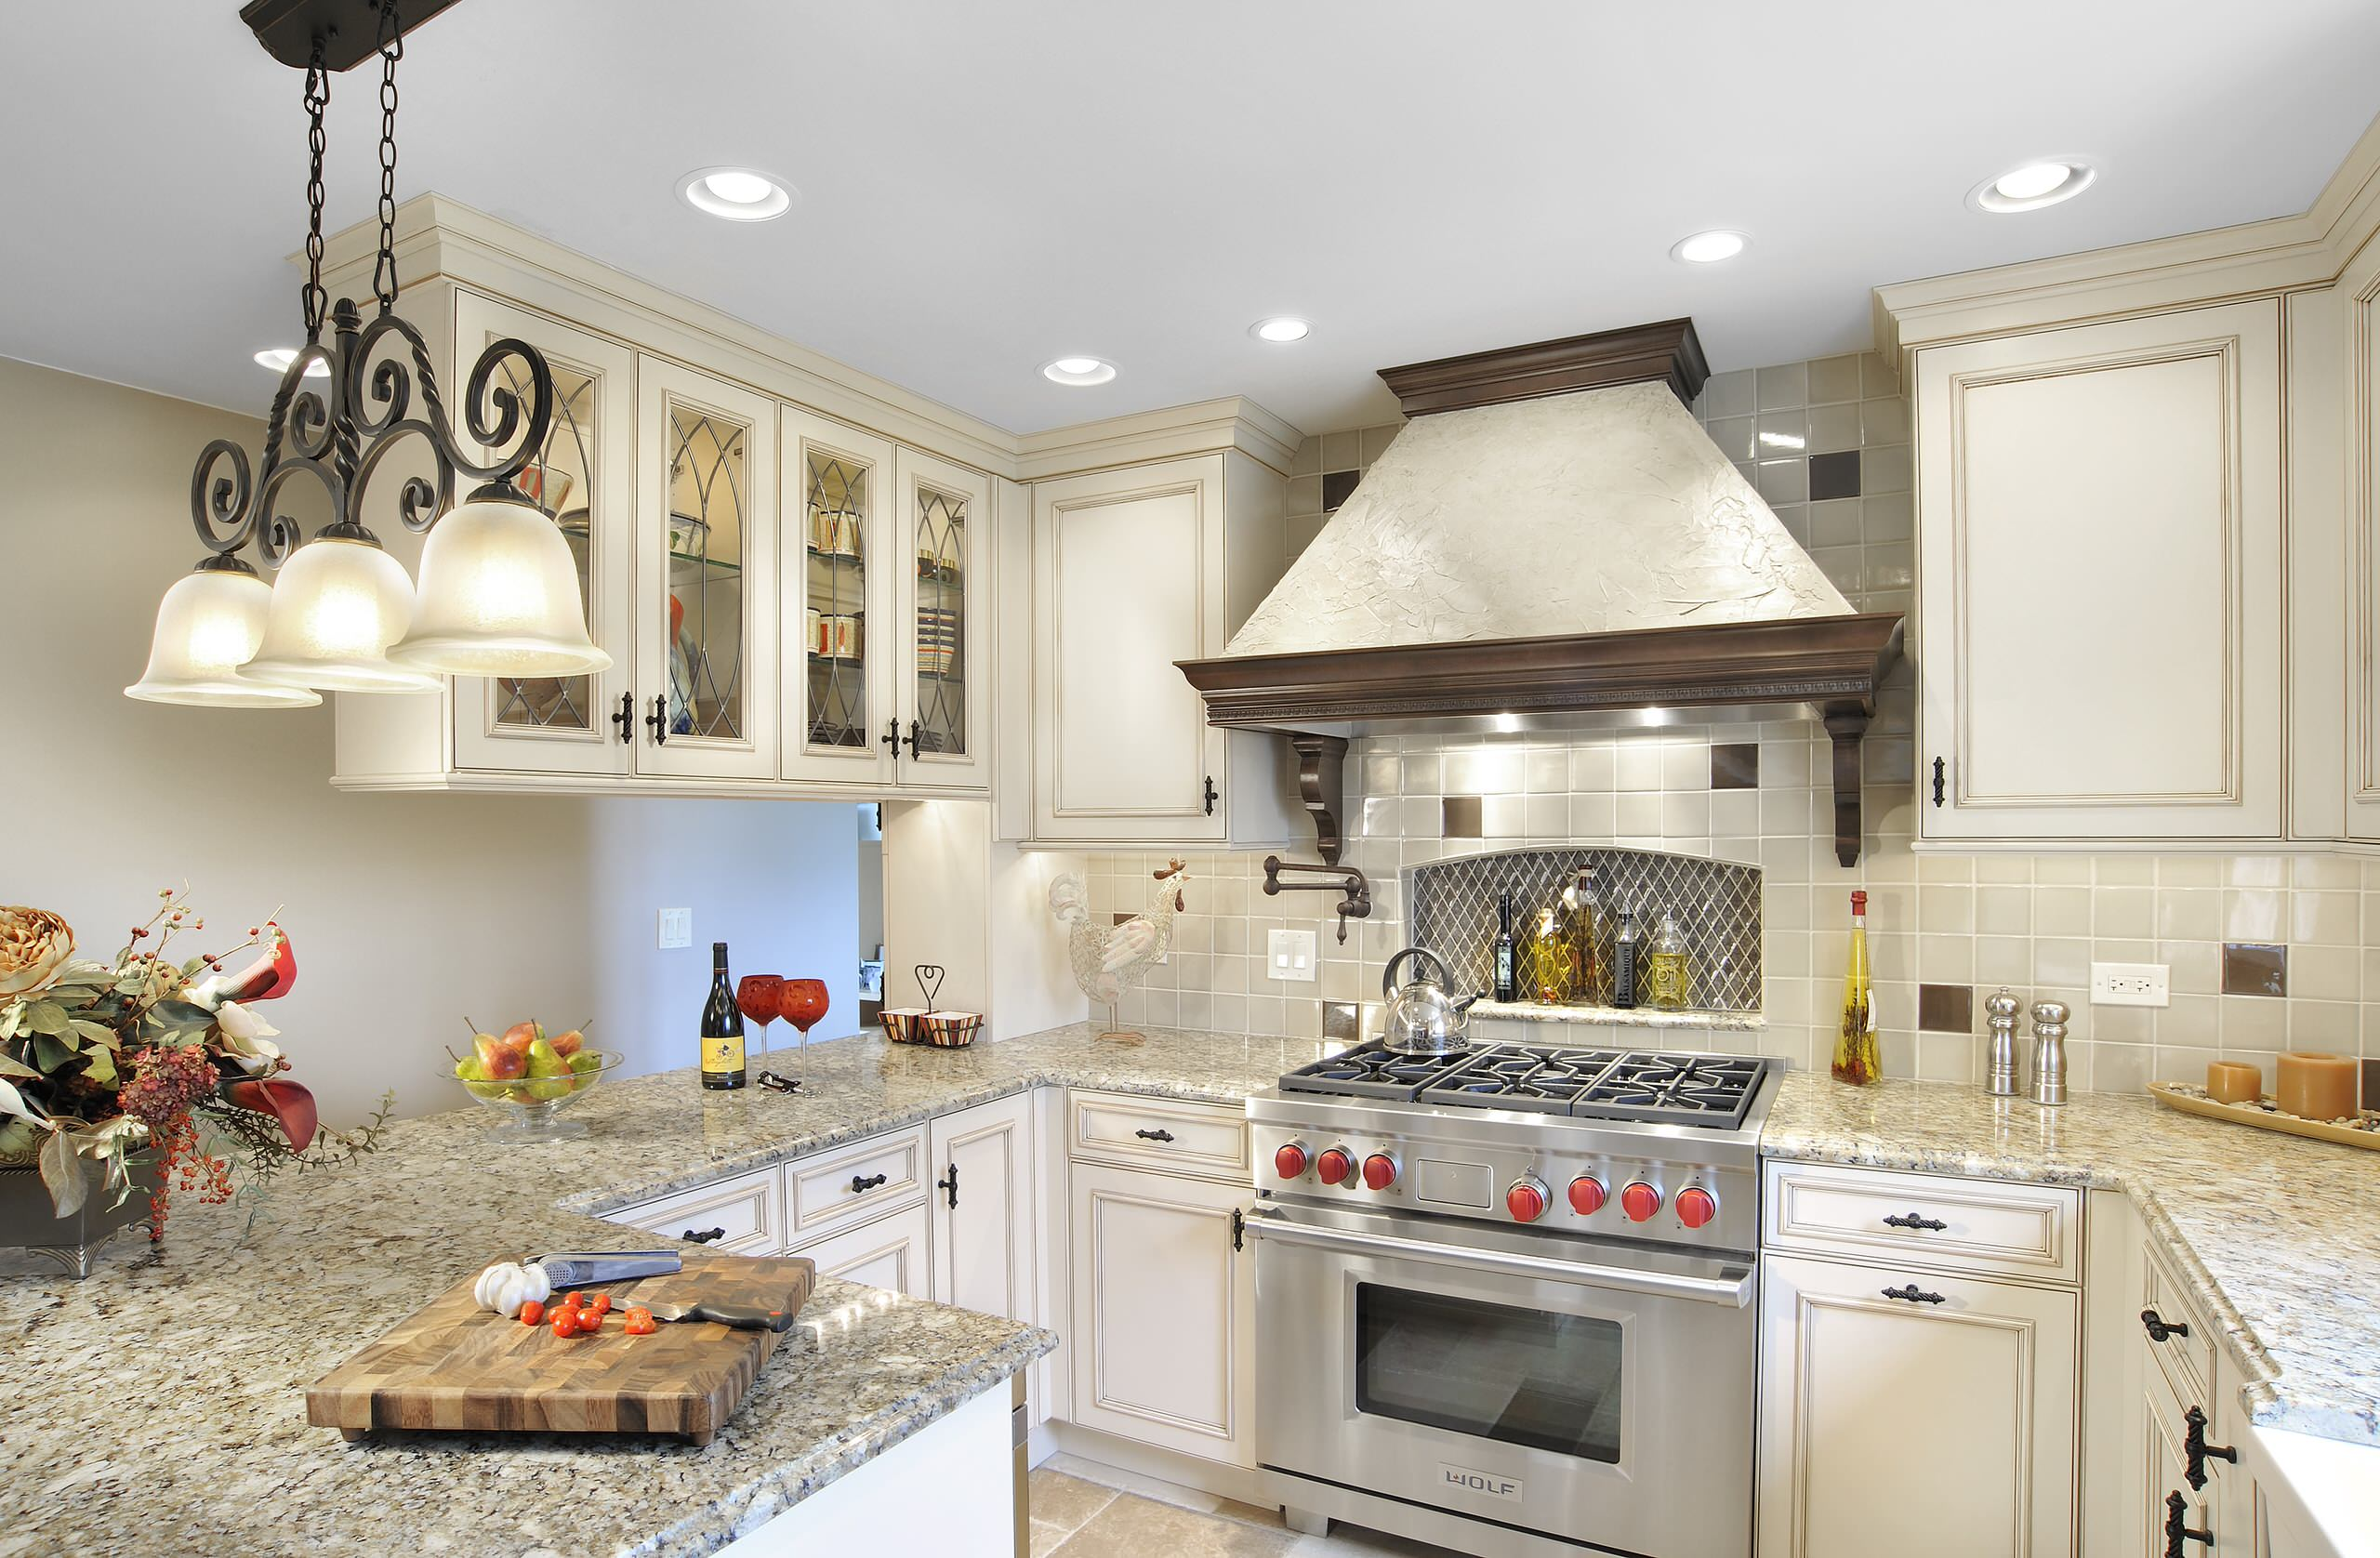 House Design: Copper Range Hoods With Pot Filler And Paint Kitchen ...